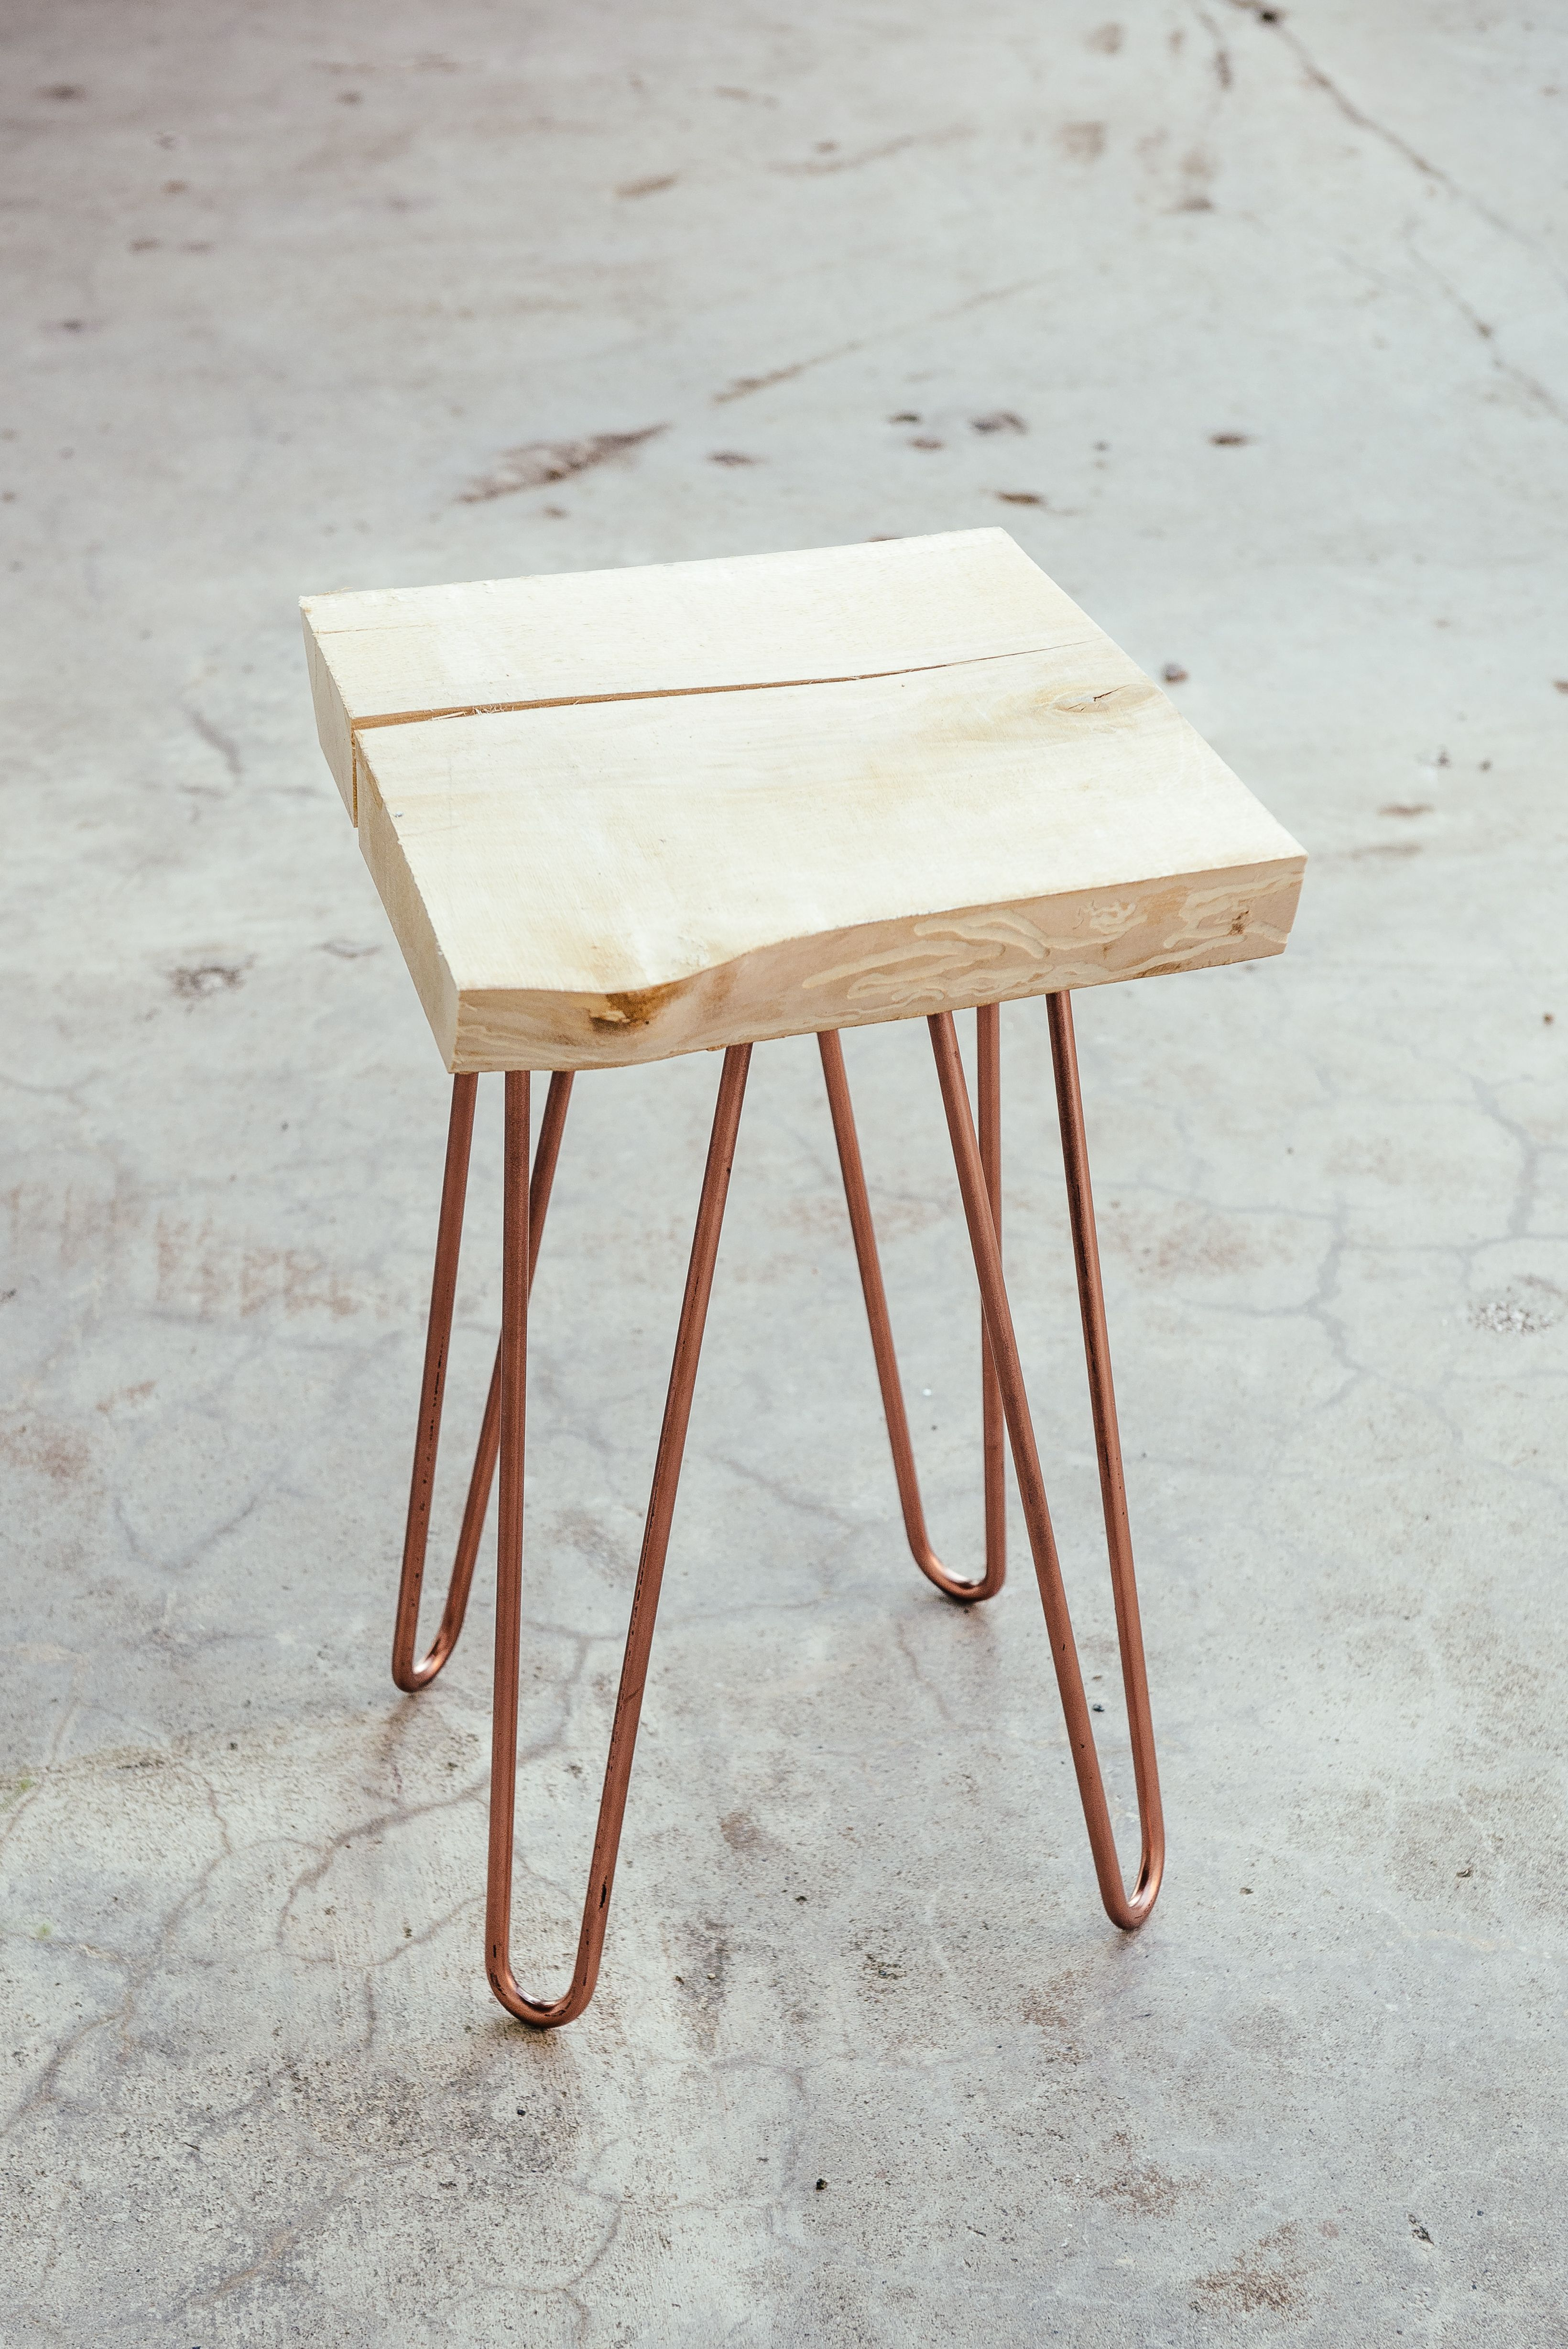 Hairpin Legs Melbourne Stool With Copper Hairpin Legs For The Home Diy Table Legs